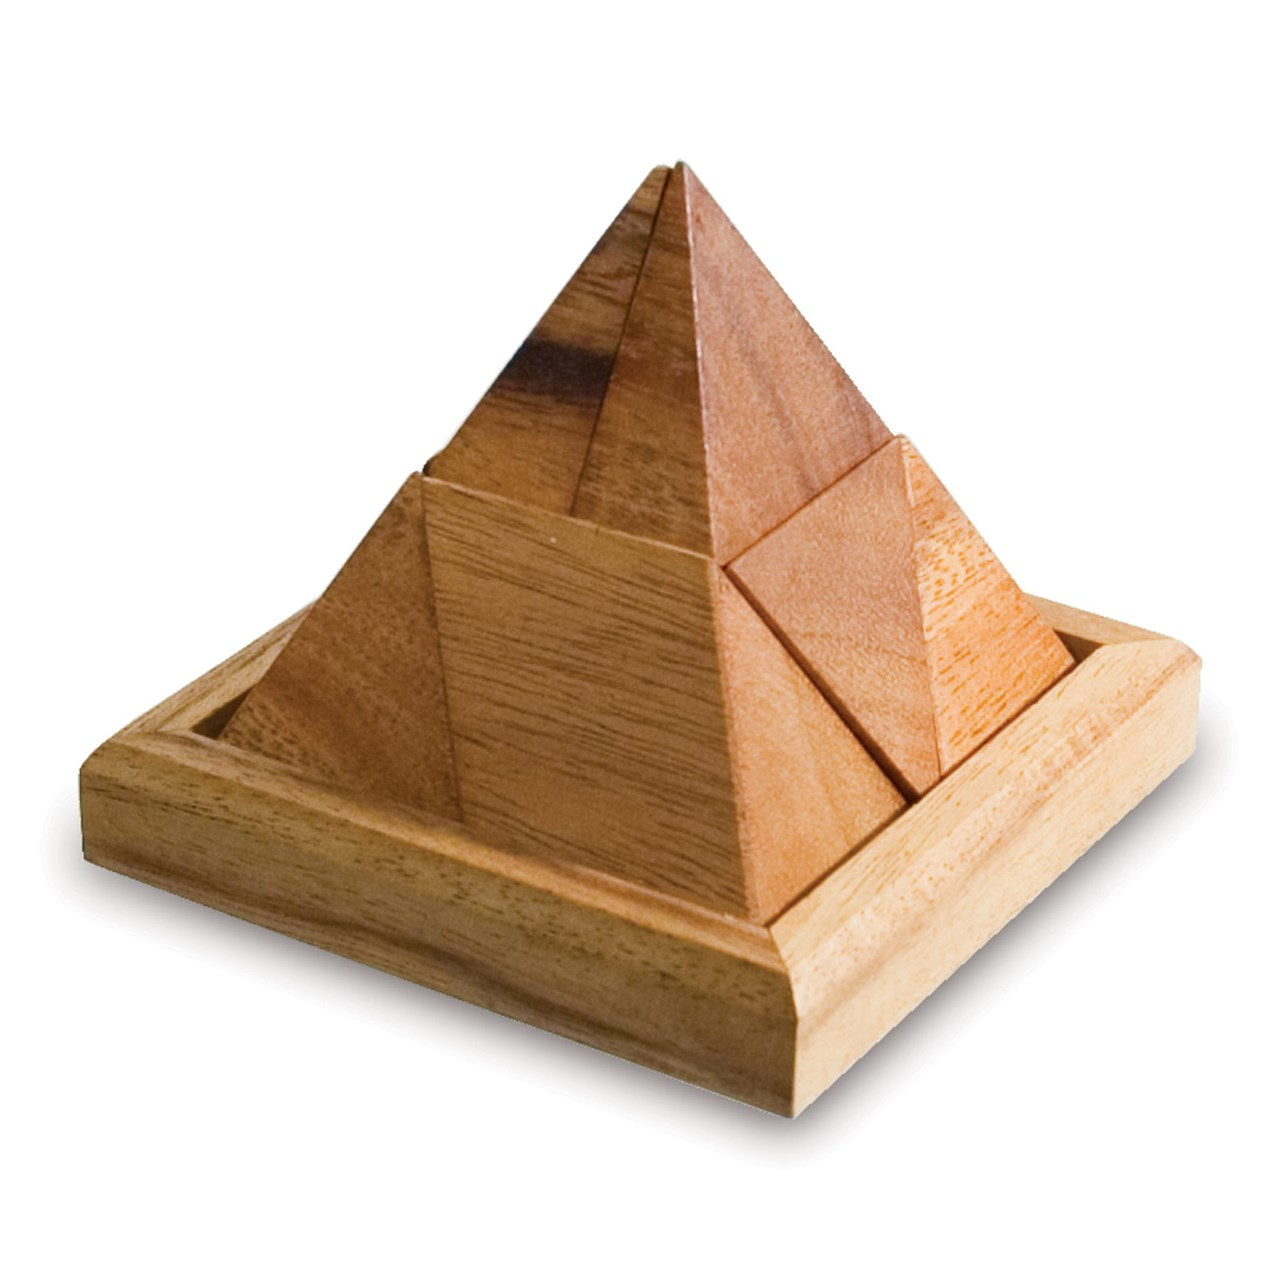 Pyramid Puzzle- Wooden Tactile Brainteaser